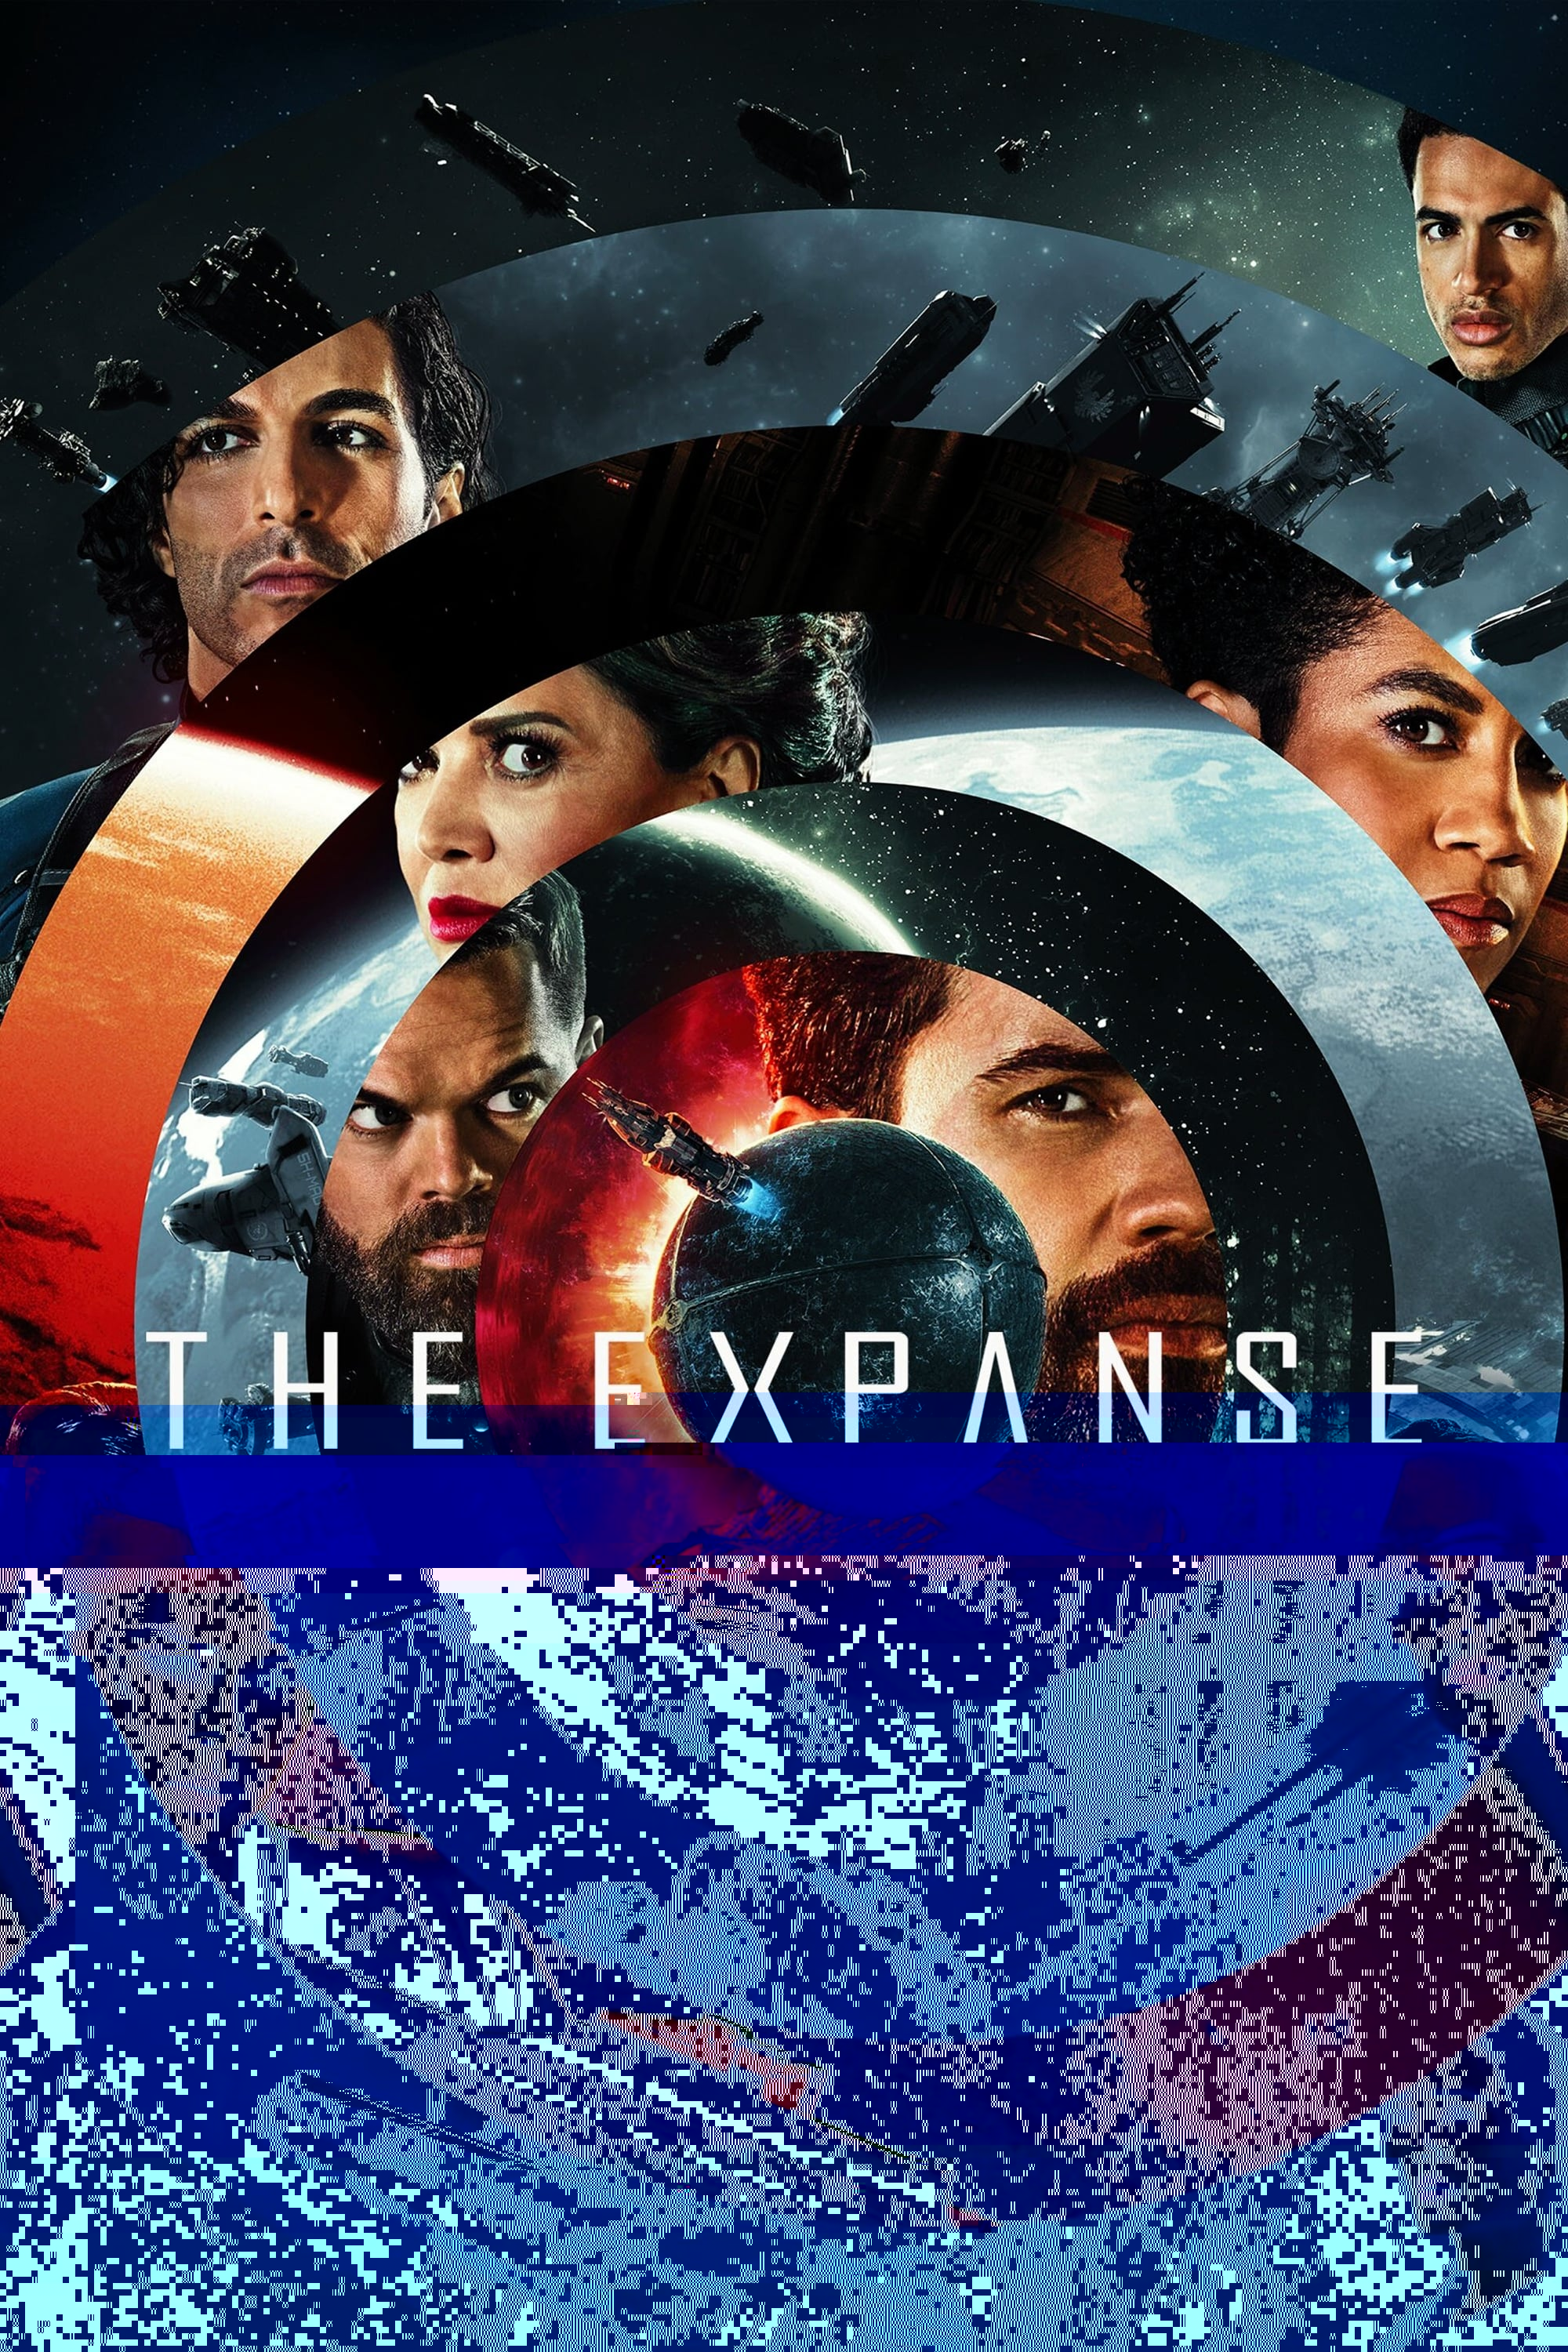 The Expanse' />